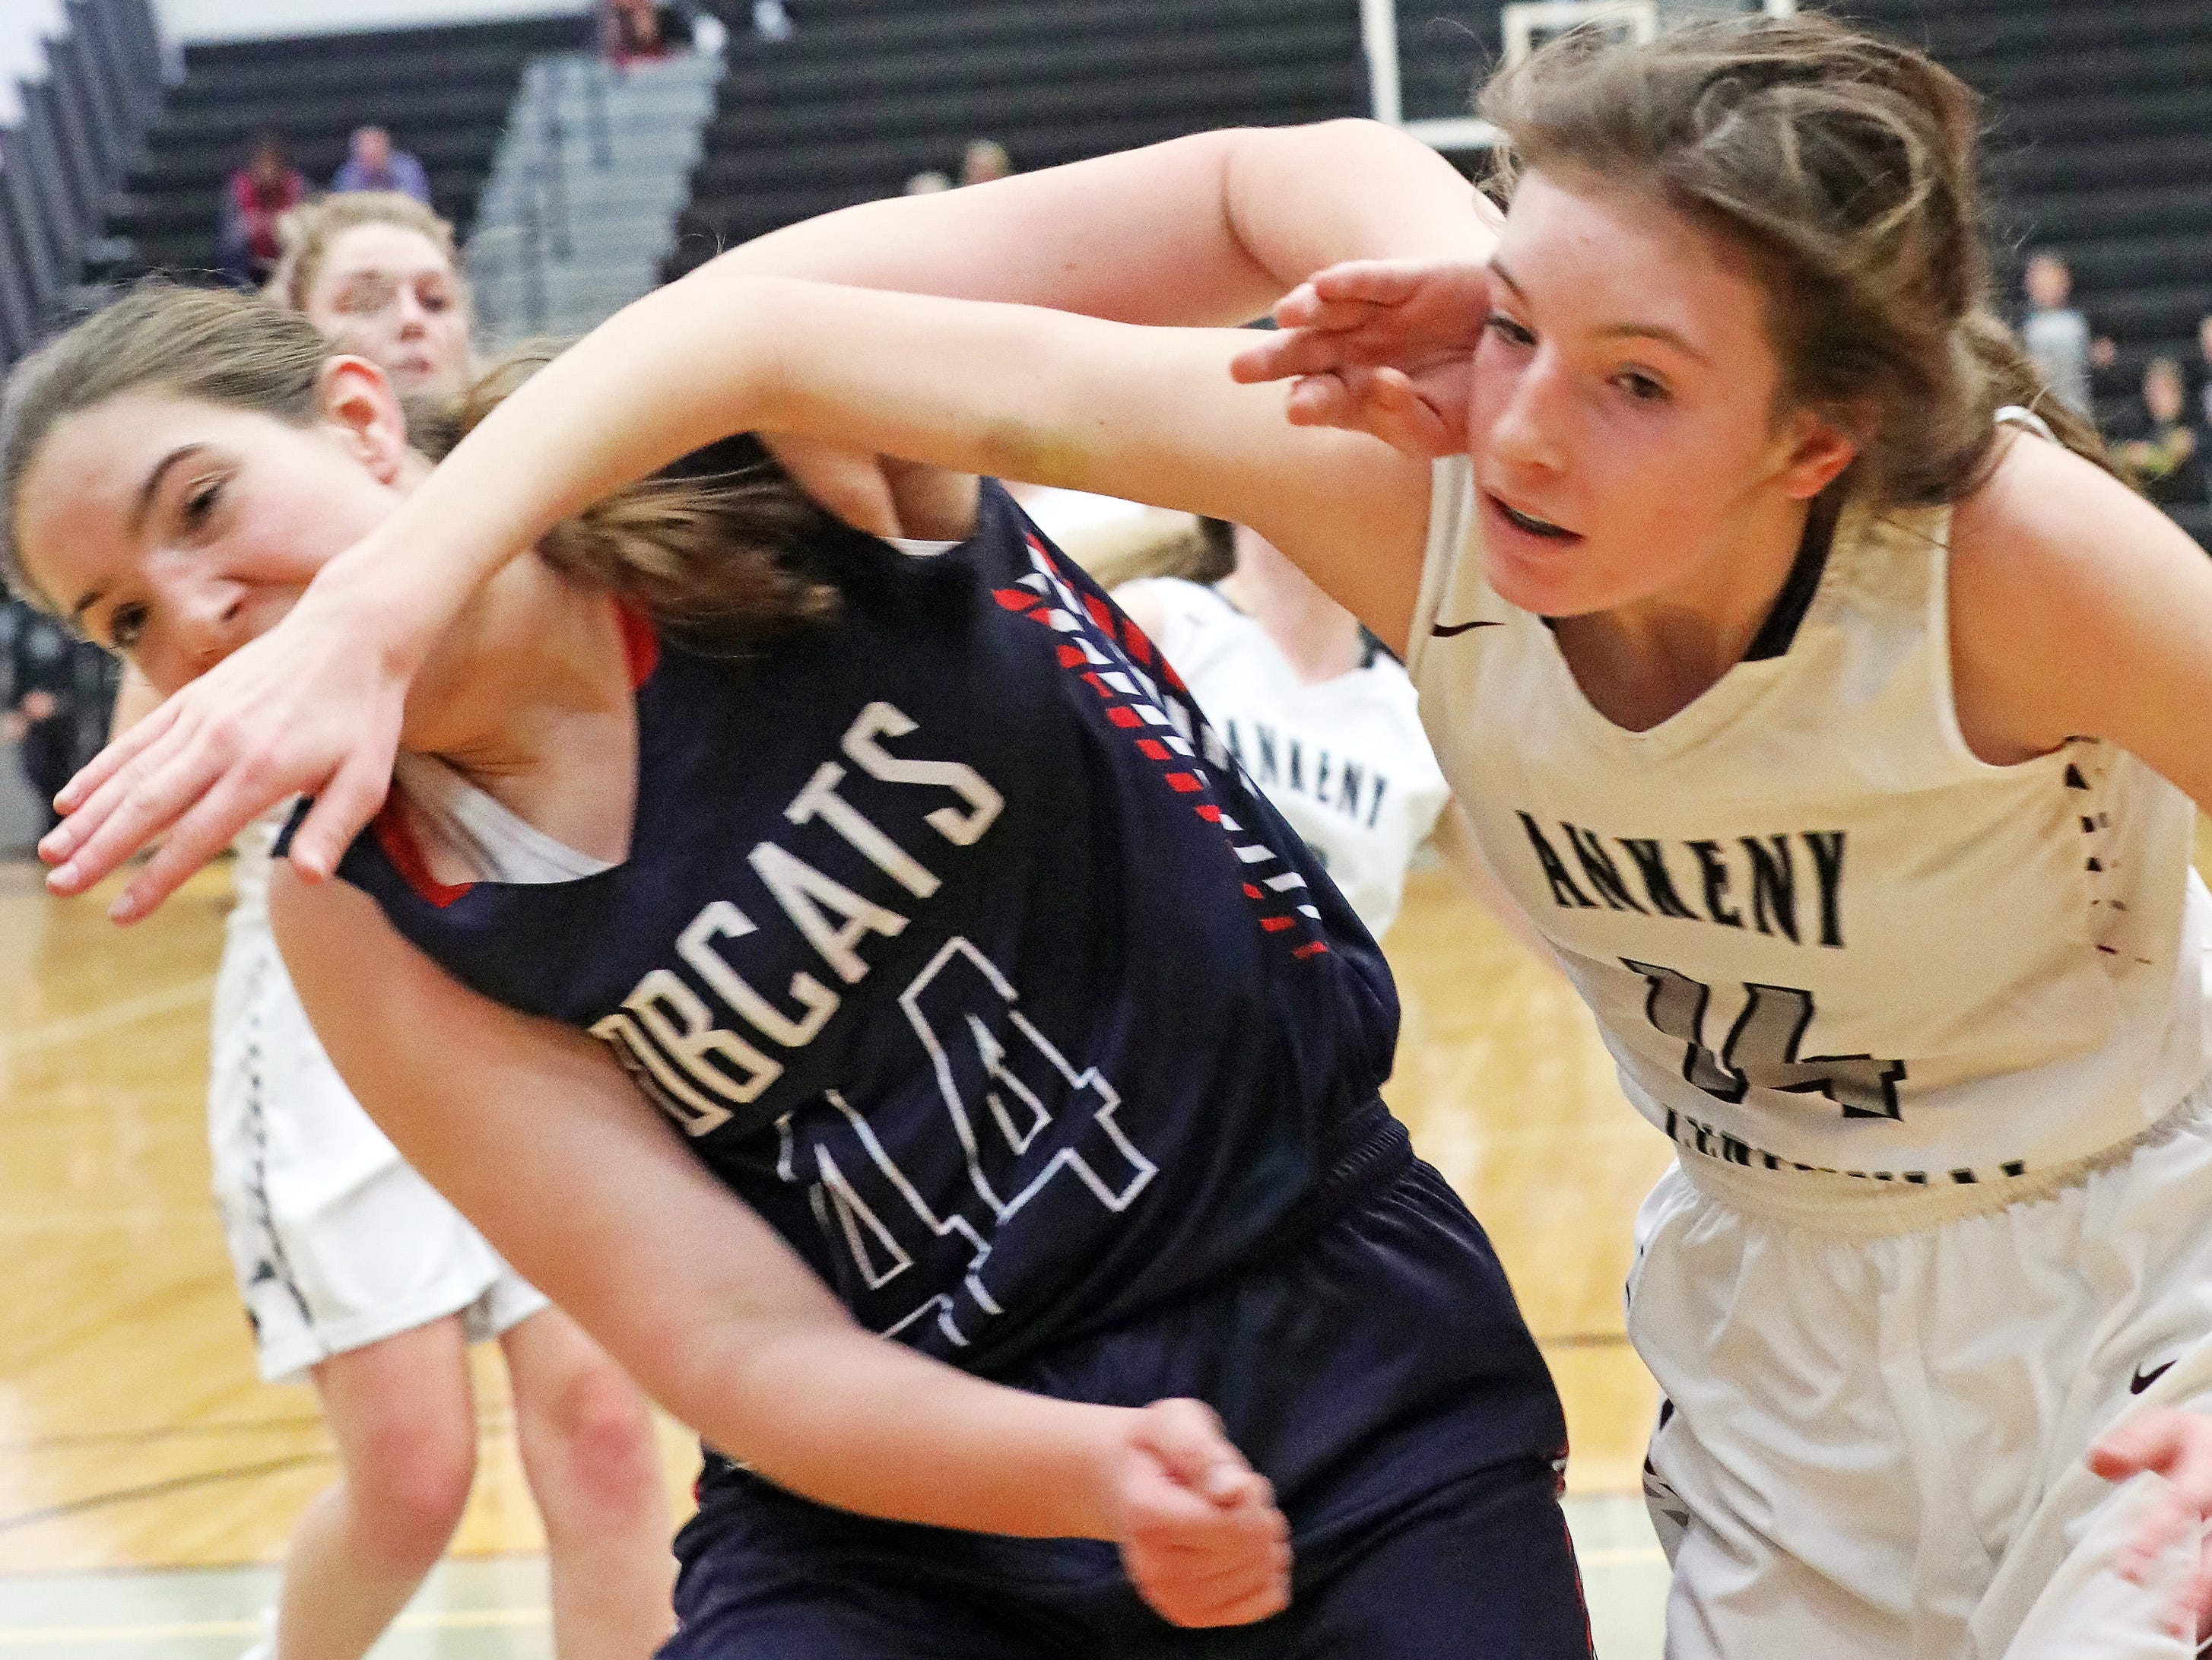 Marshalltown freshman Paige Wertzberger and Ankeny Centennial freshman Elle Street battle as the Marshalltown Bobcats compete against the Ankeny Centennial Jaguars in high school girls basketball on Tuesday, Jan. 8, 2019 at Ankeny Centennial High School.